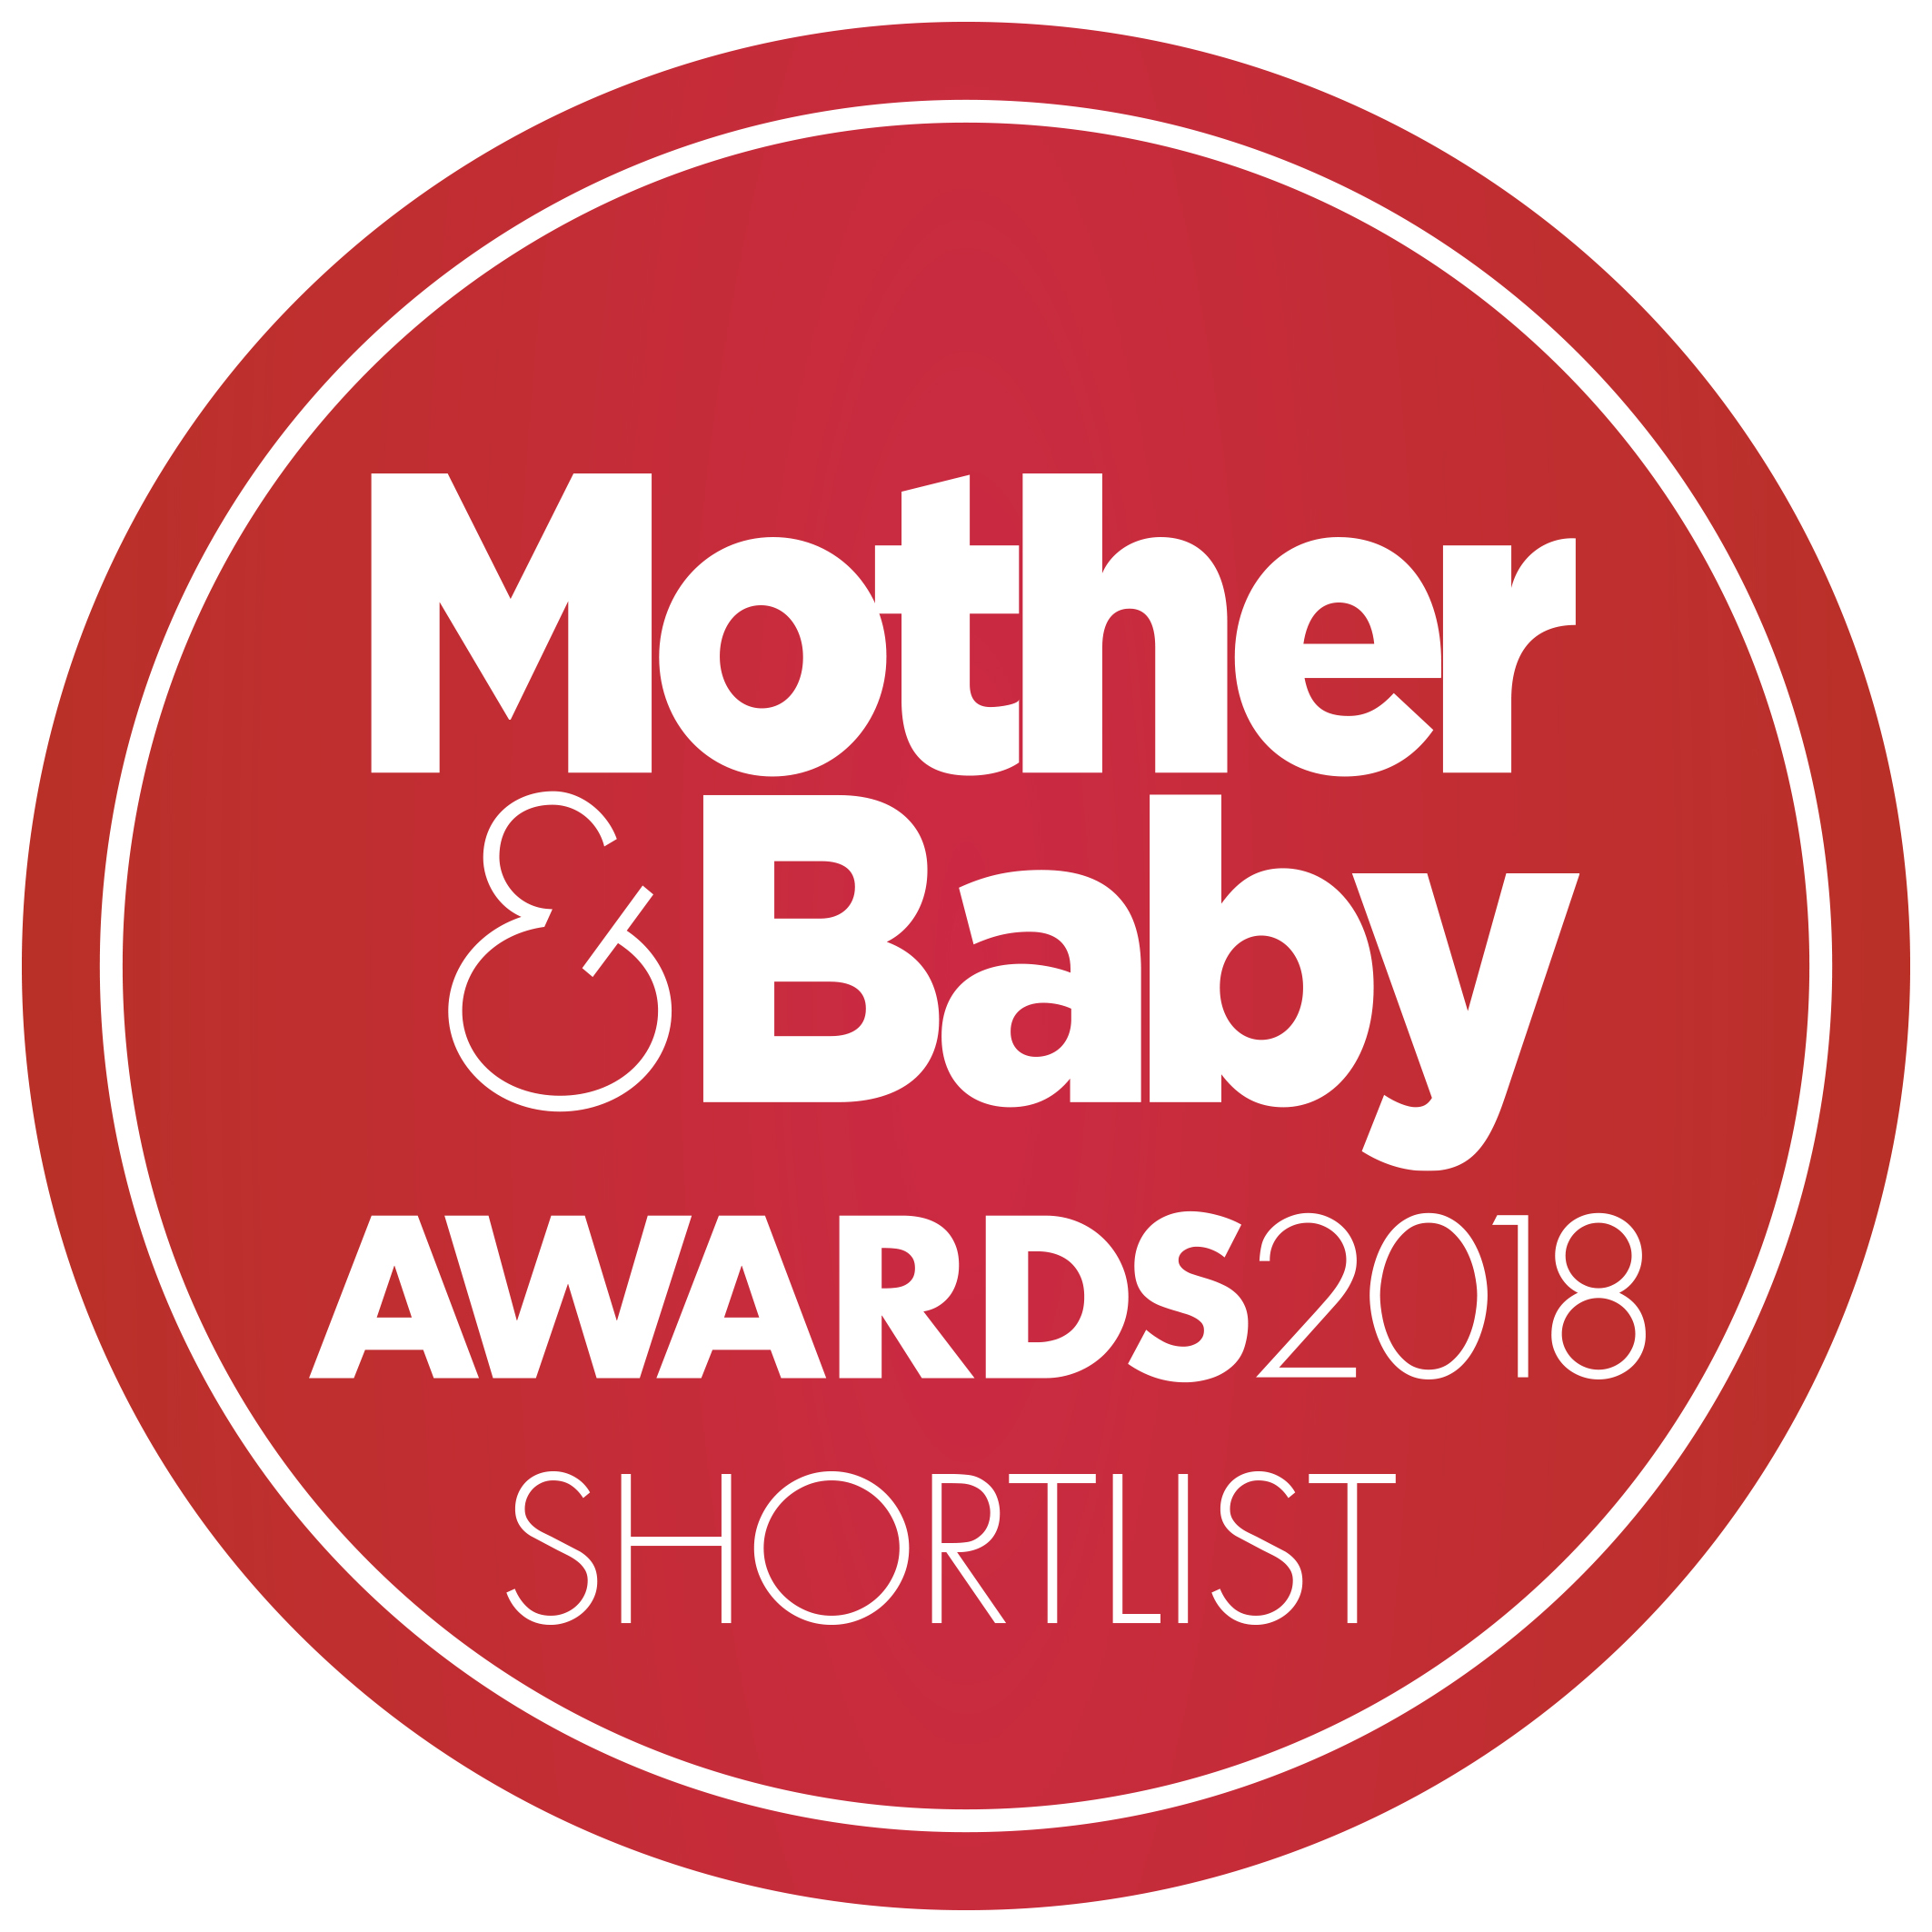 Mother and Baby Awards 2018 Shortlist